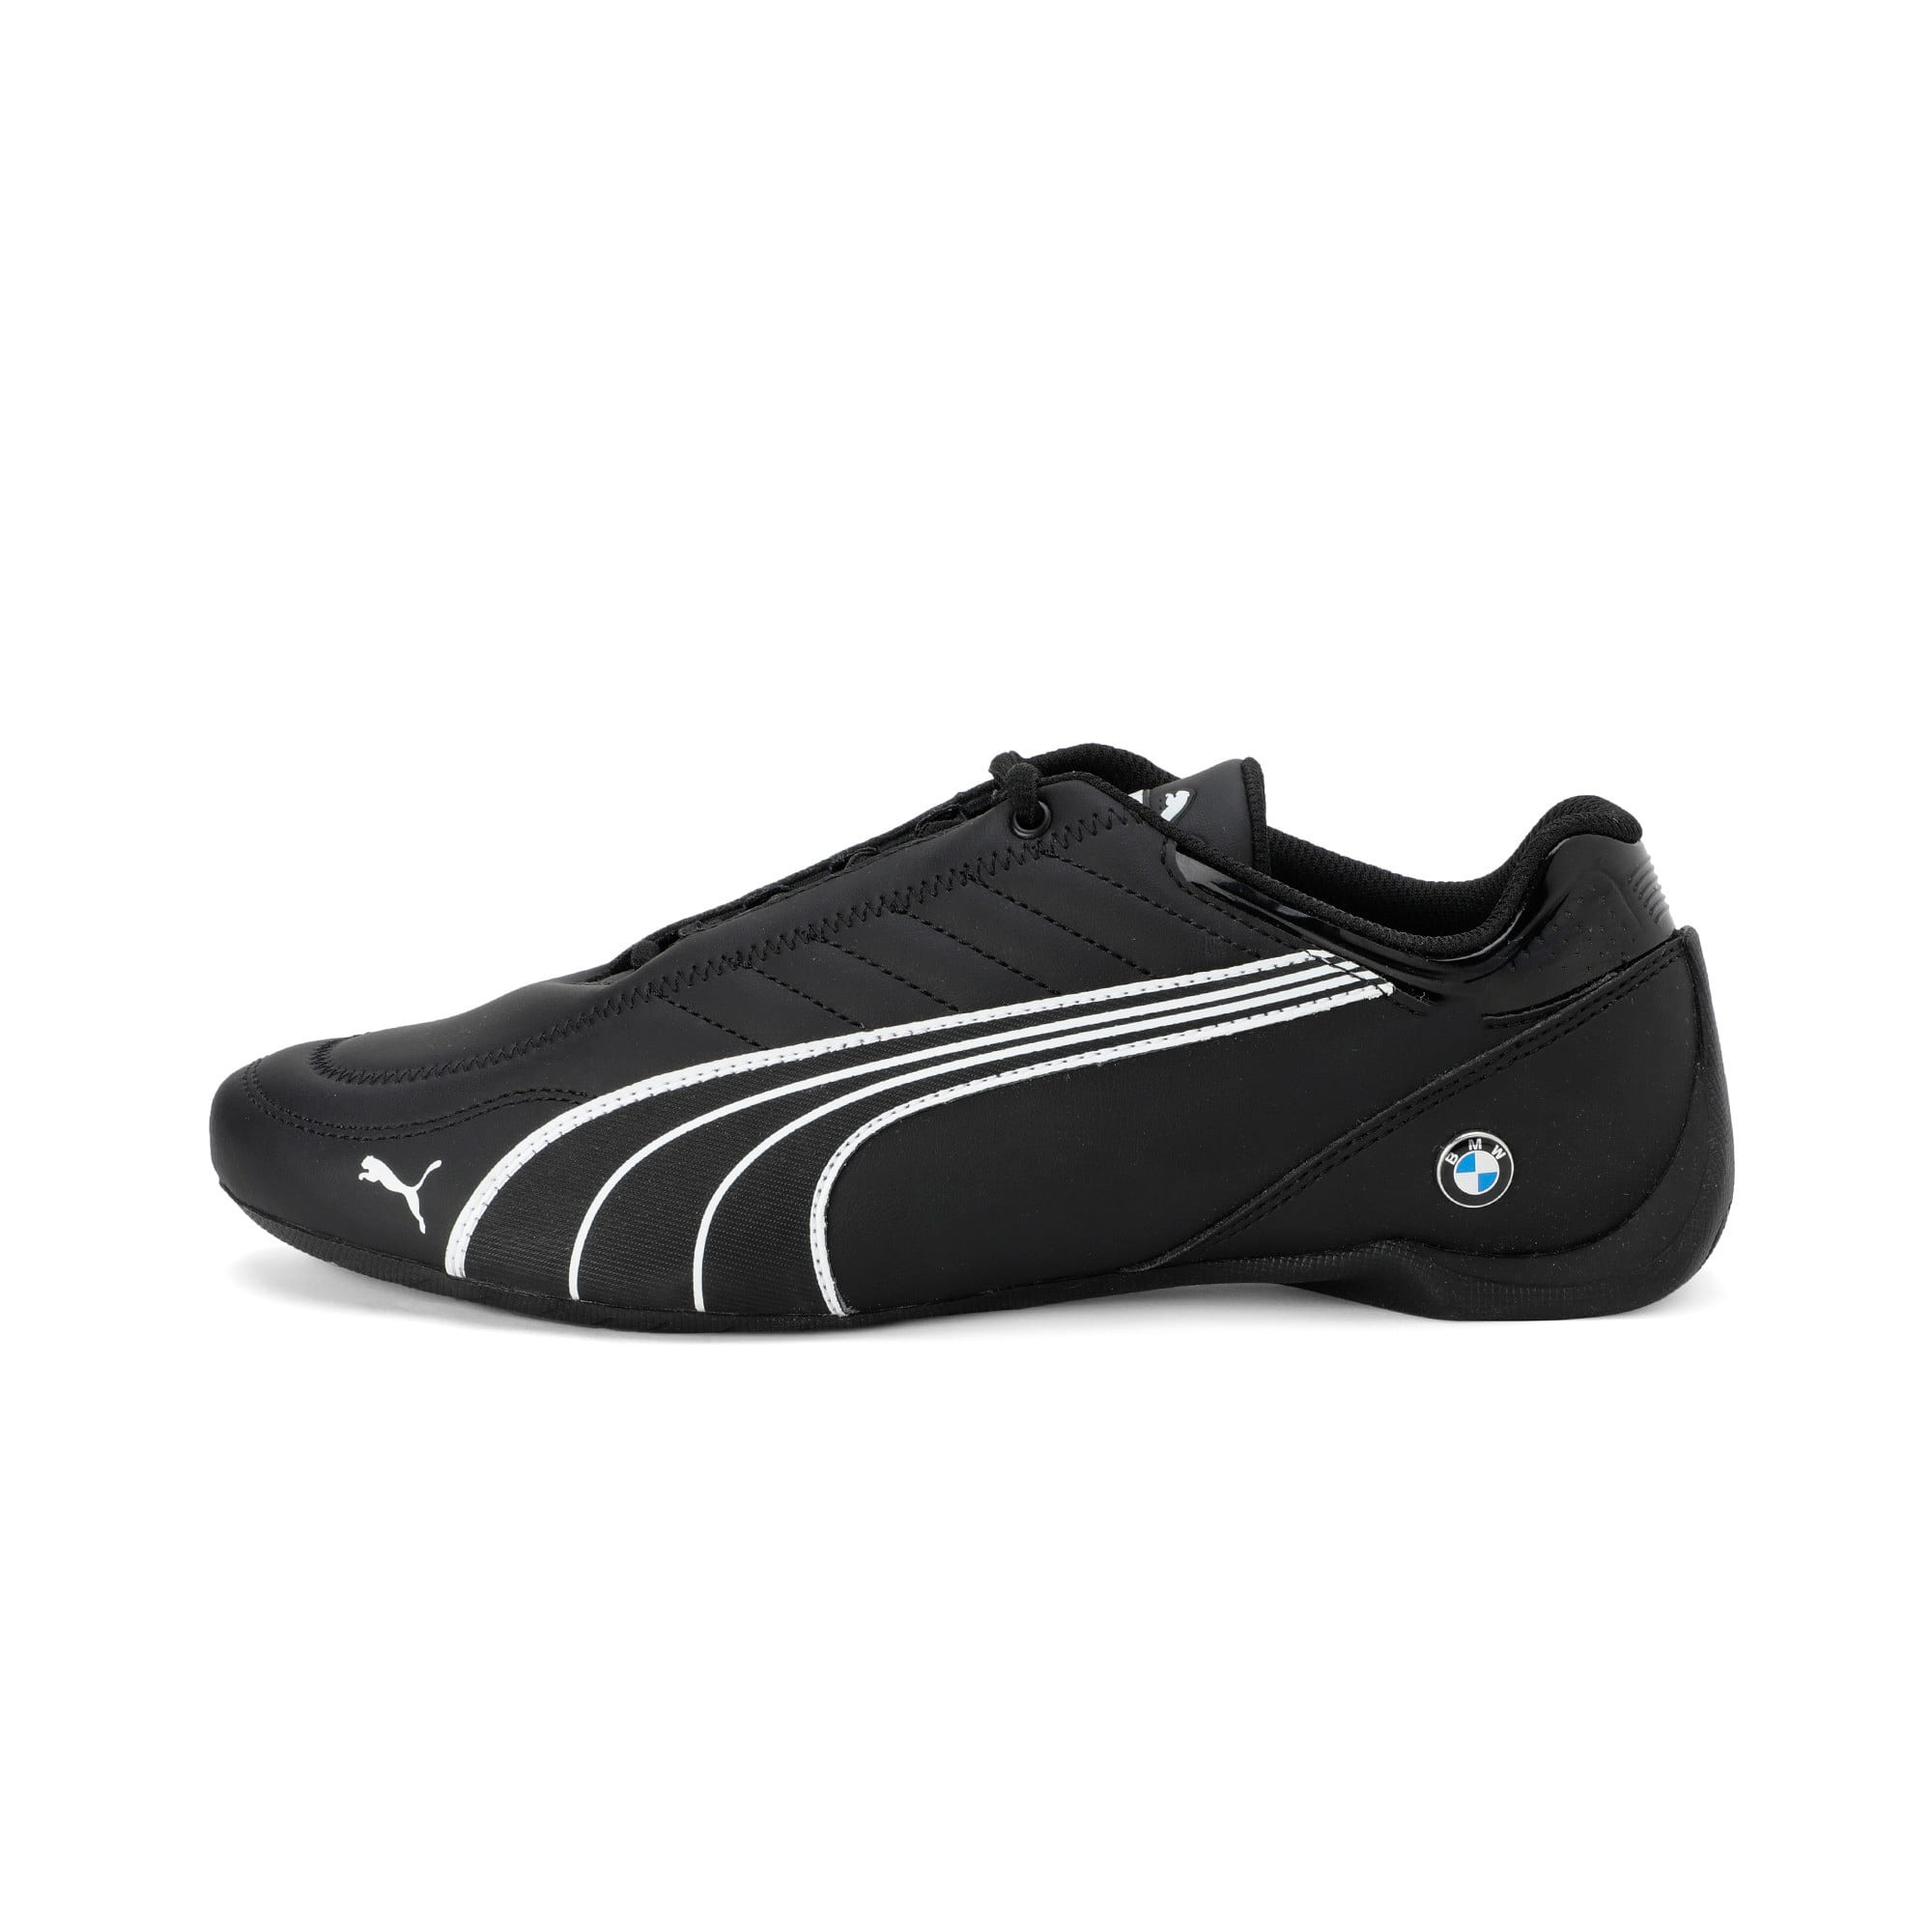 Thumbnail 1 of BMW M Motorsport Future Kart Cat Trainers, Puma Black-Puma White, medium-IND